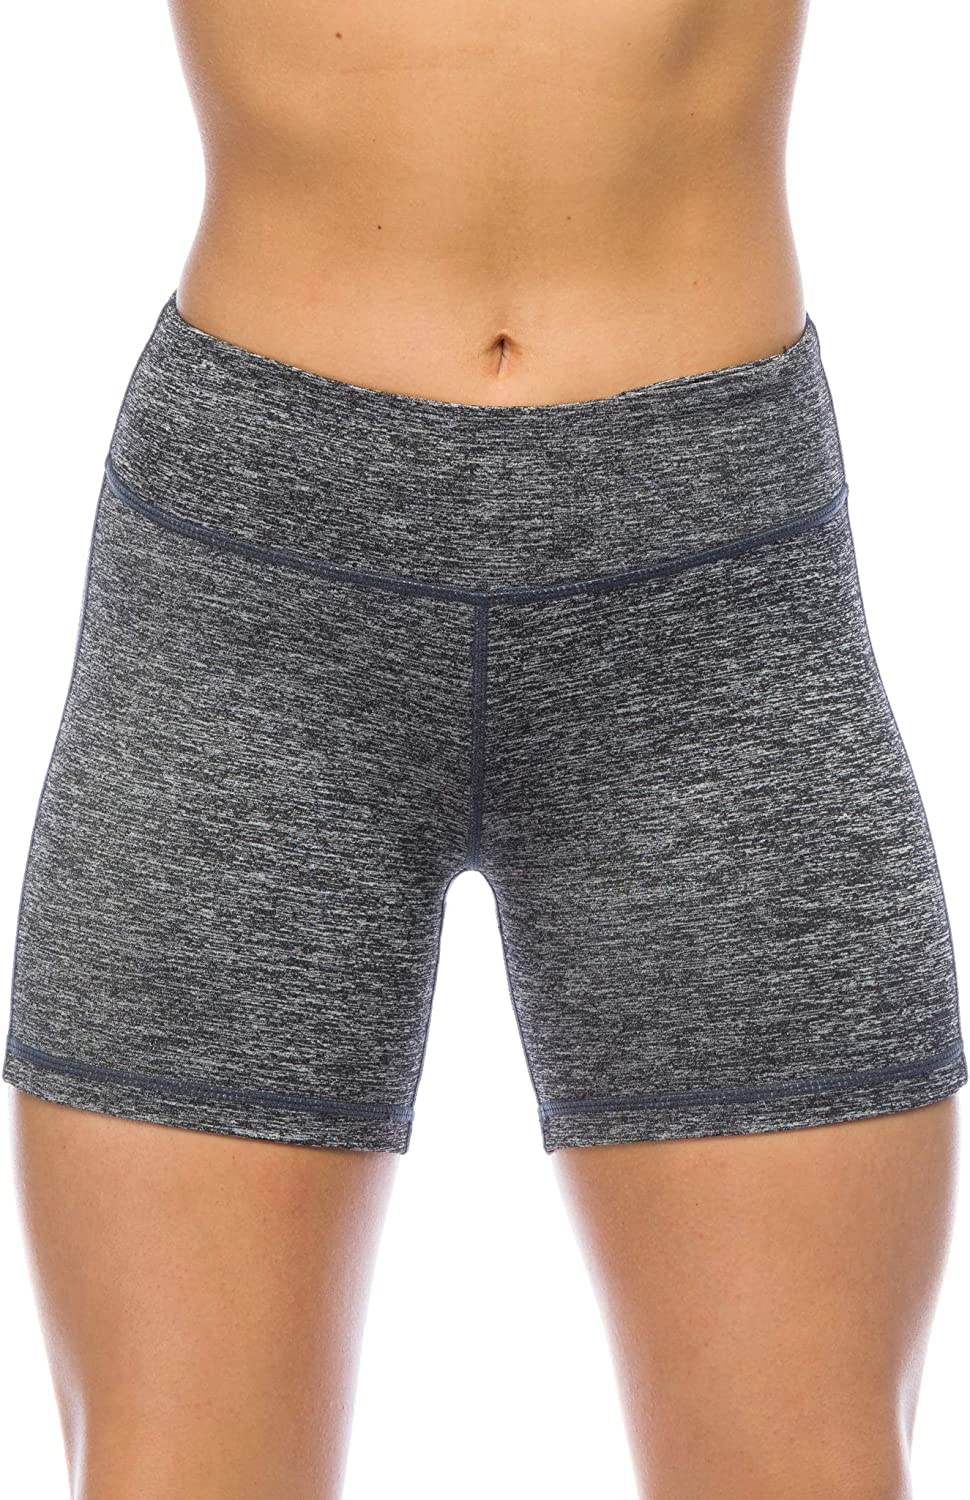 I AM BECOMING 5  Inseam Woman's Compression Booty Shorts Yoga, Running, Volleyball Crossfit Athletes